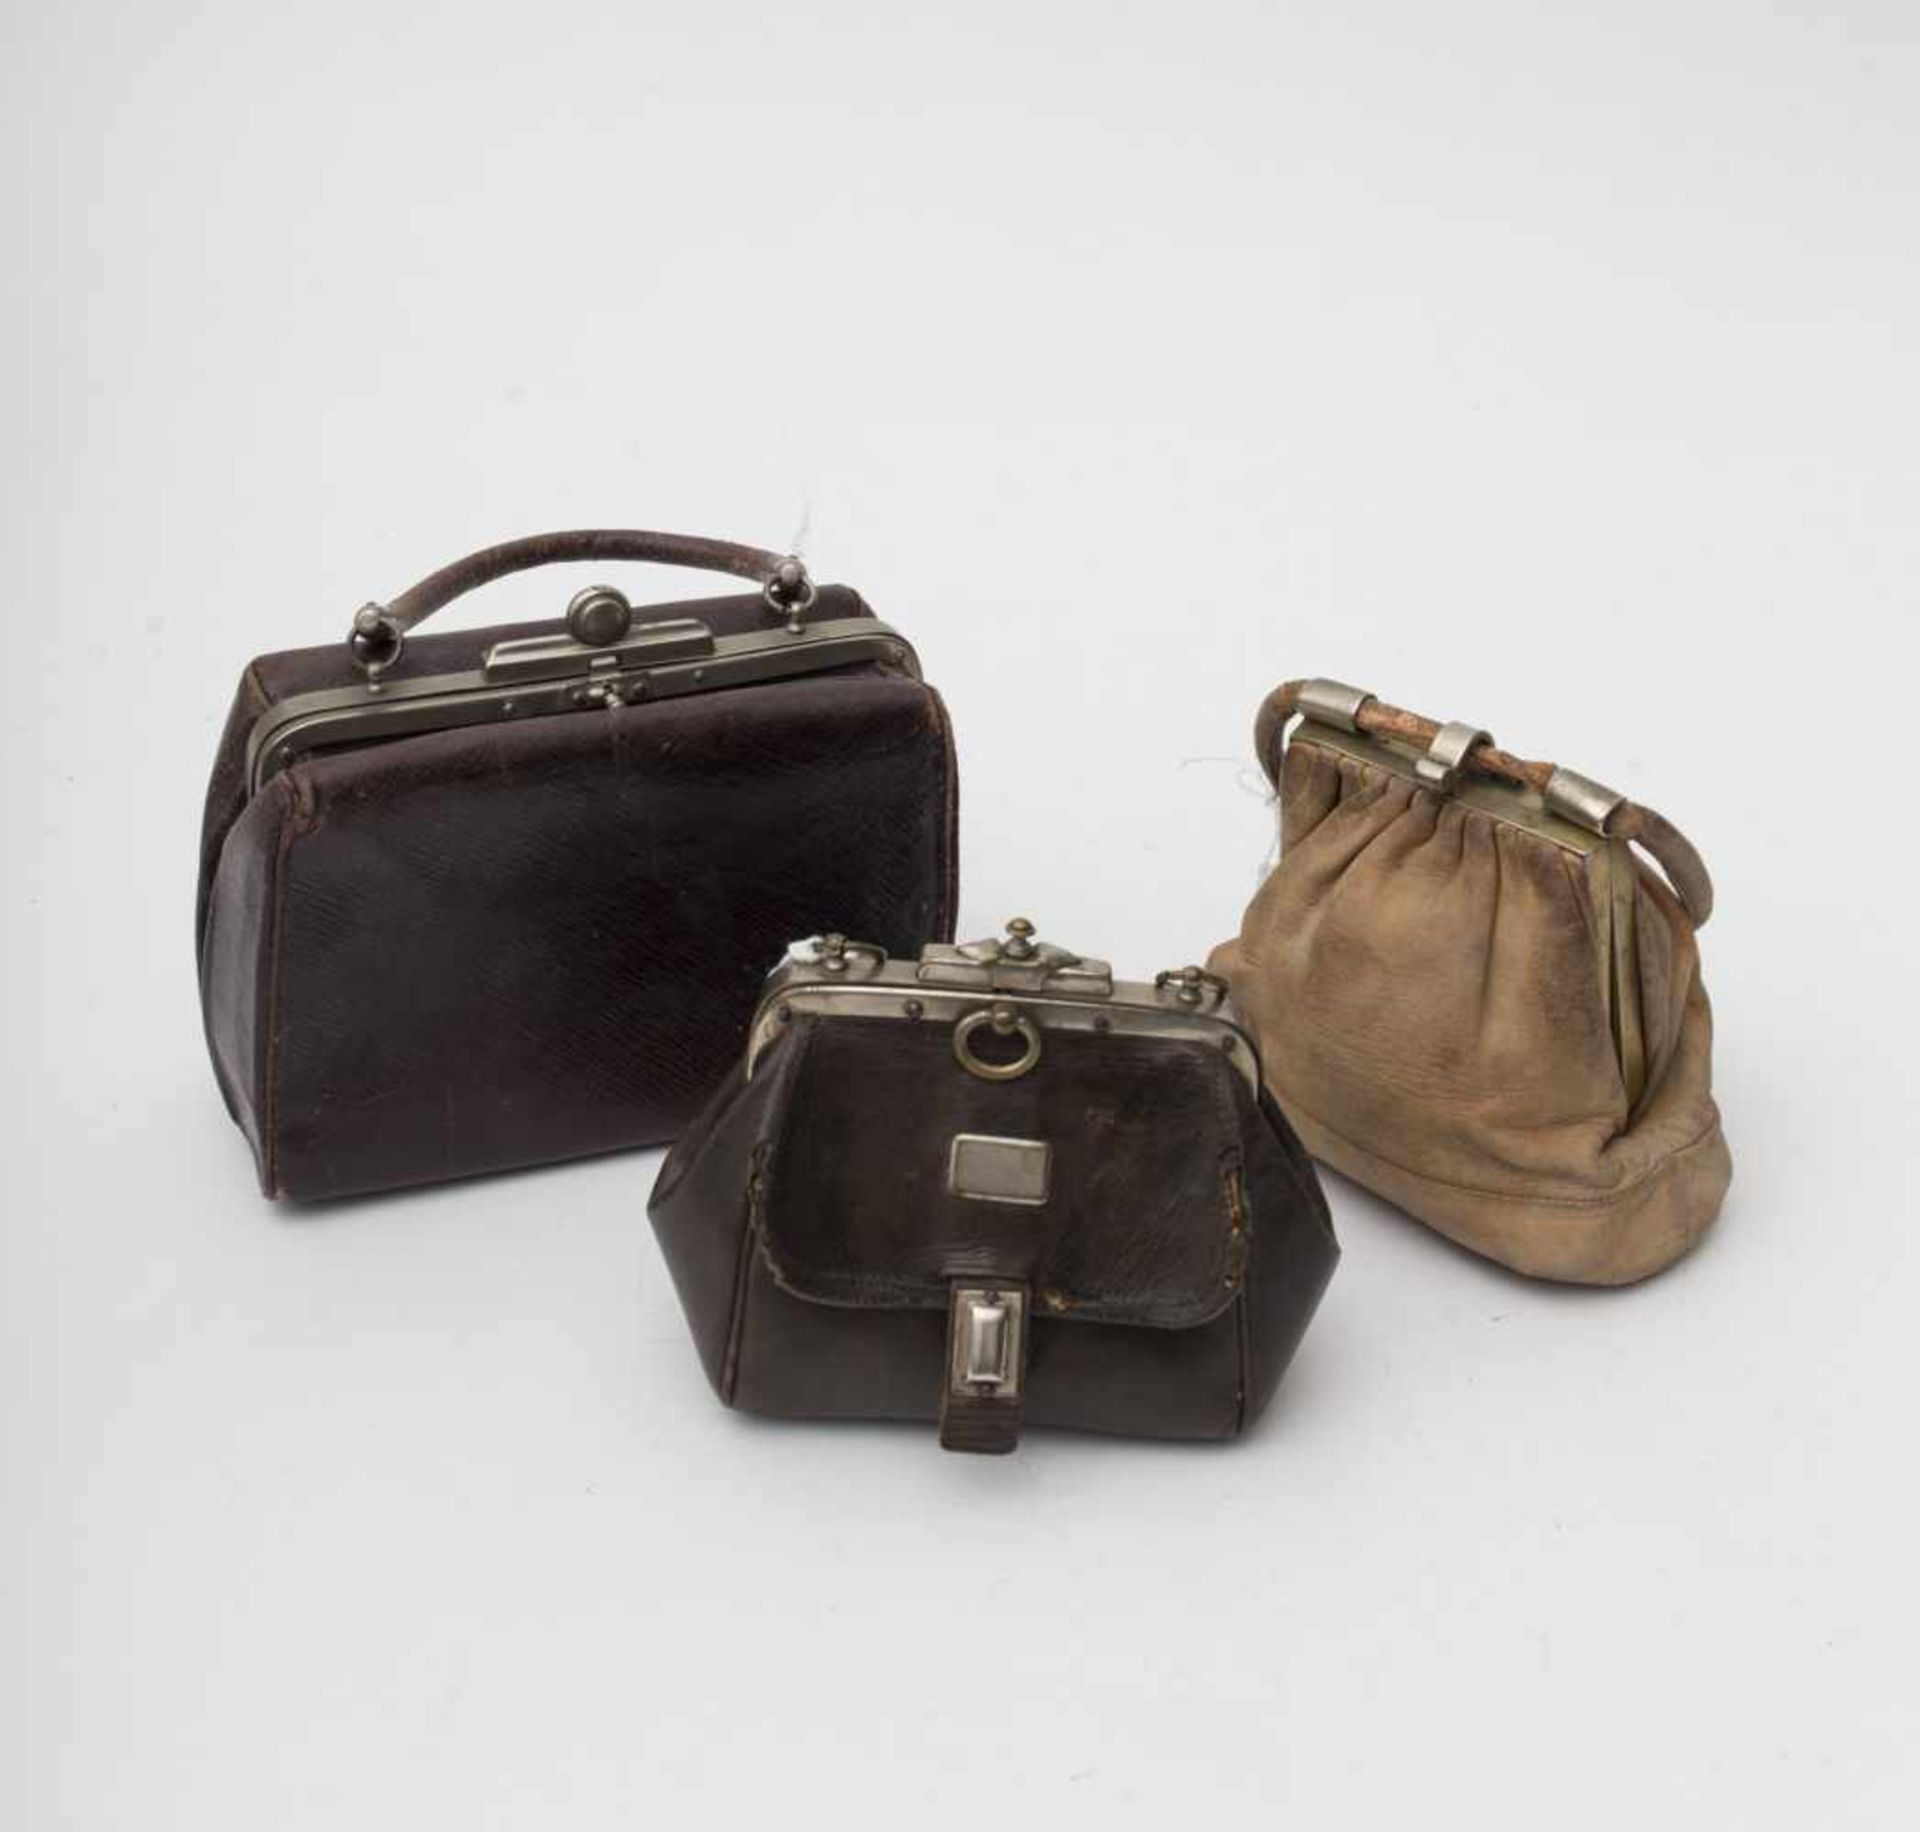 Set of accessories For large dolls, comprised of 3 early 20th century leather bags.